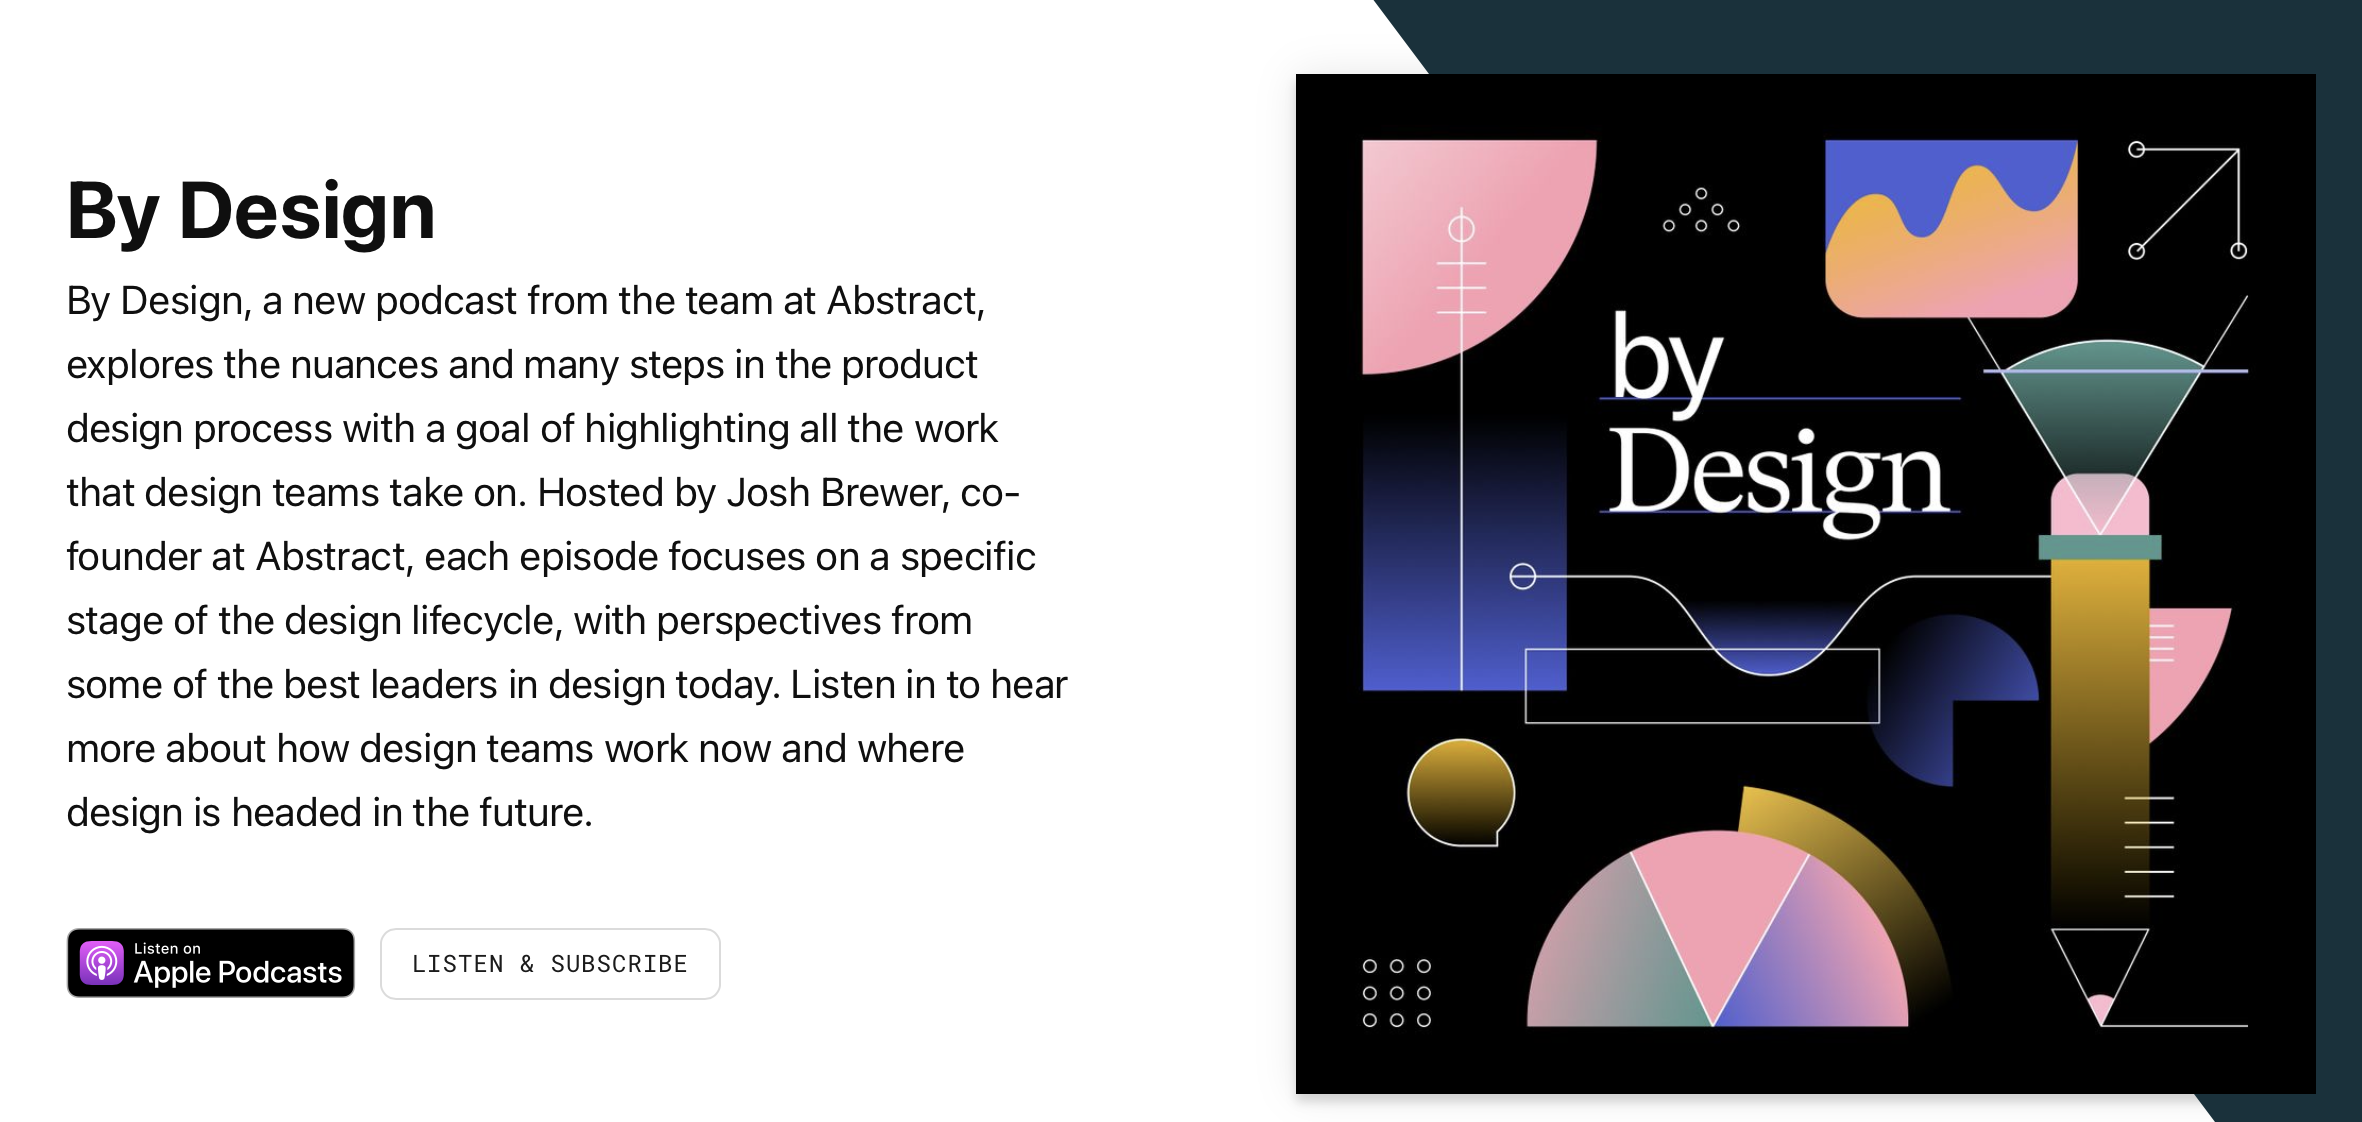 By Design Podcast brought to you by Abstract